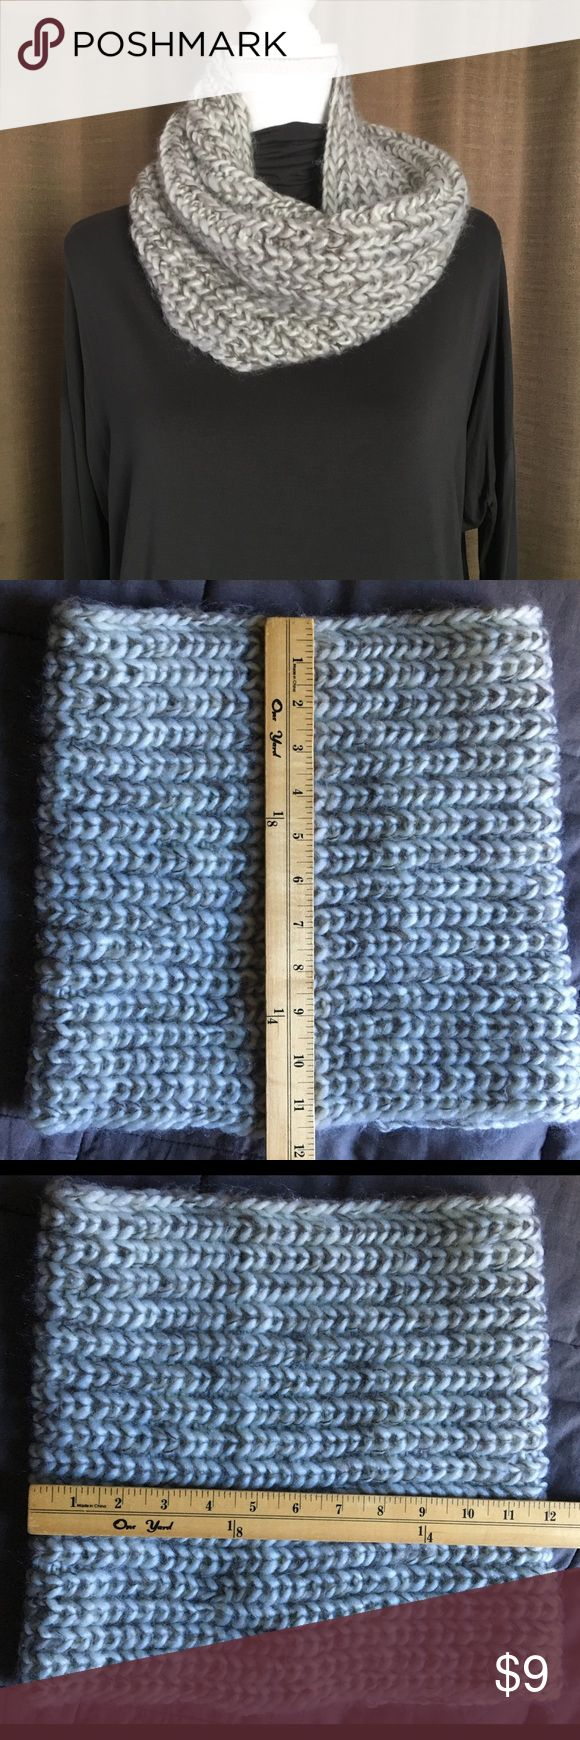 """Soft Chunky Infinity Scarf Gray Knit NWOT This scarf measures 11 1/2"""" x 12"""" inches. NWOT, Gray, soft and warm :) please feel free to ask questions :) Accessories Scarves & Wraps"""